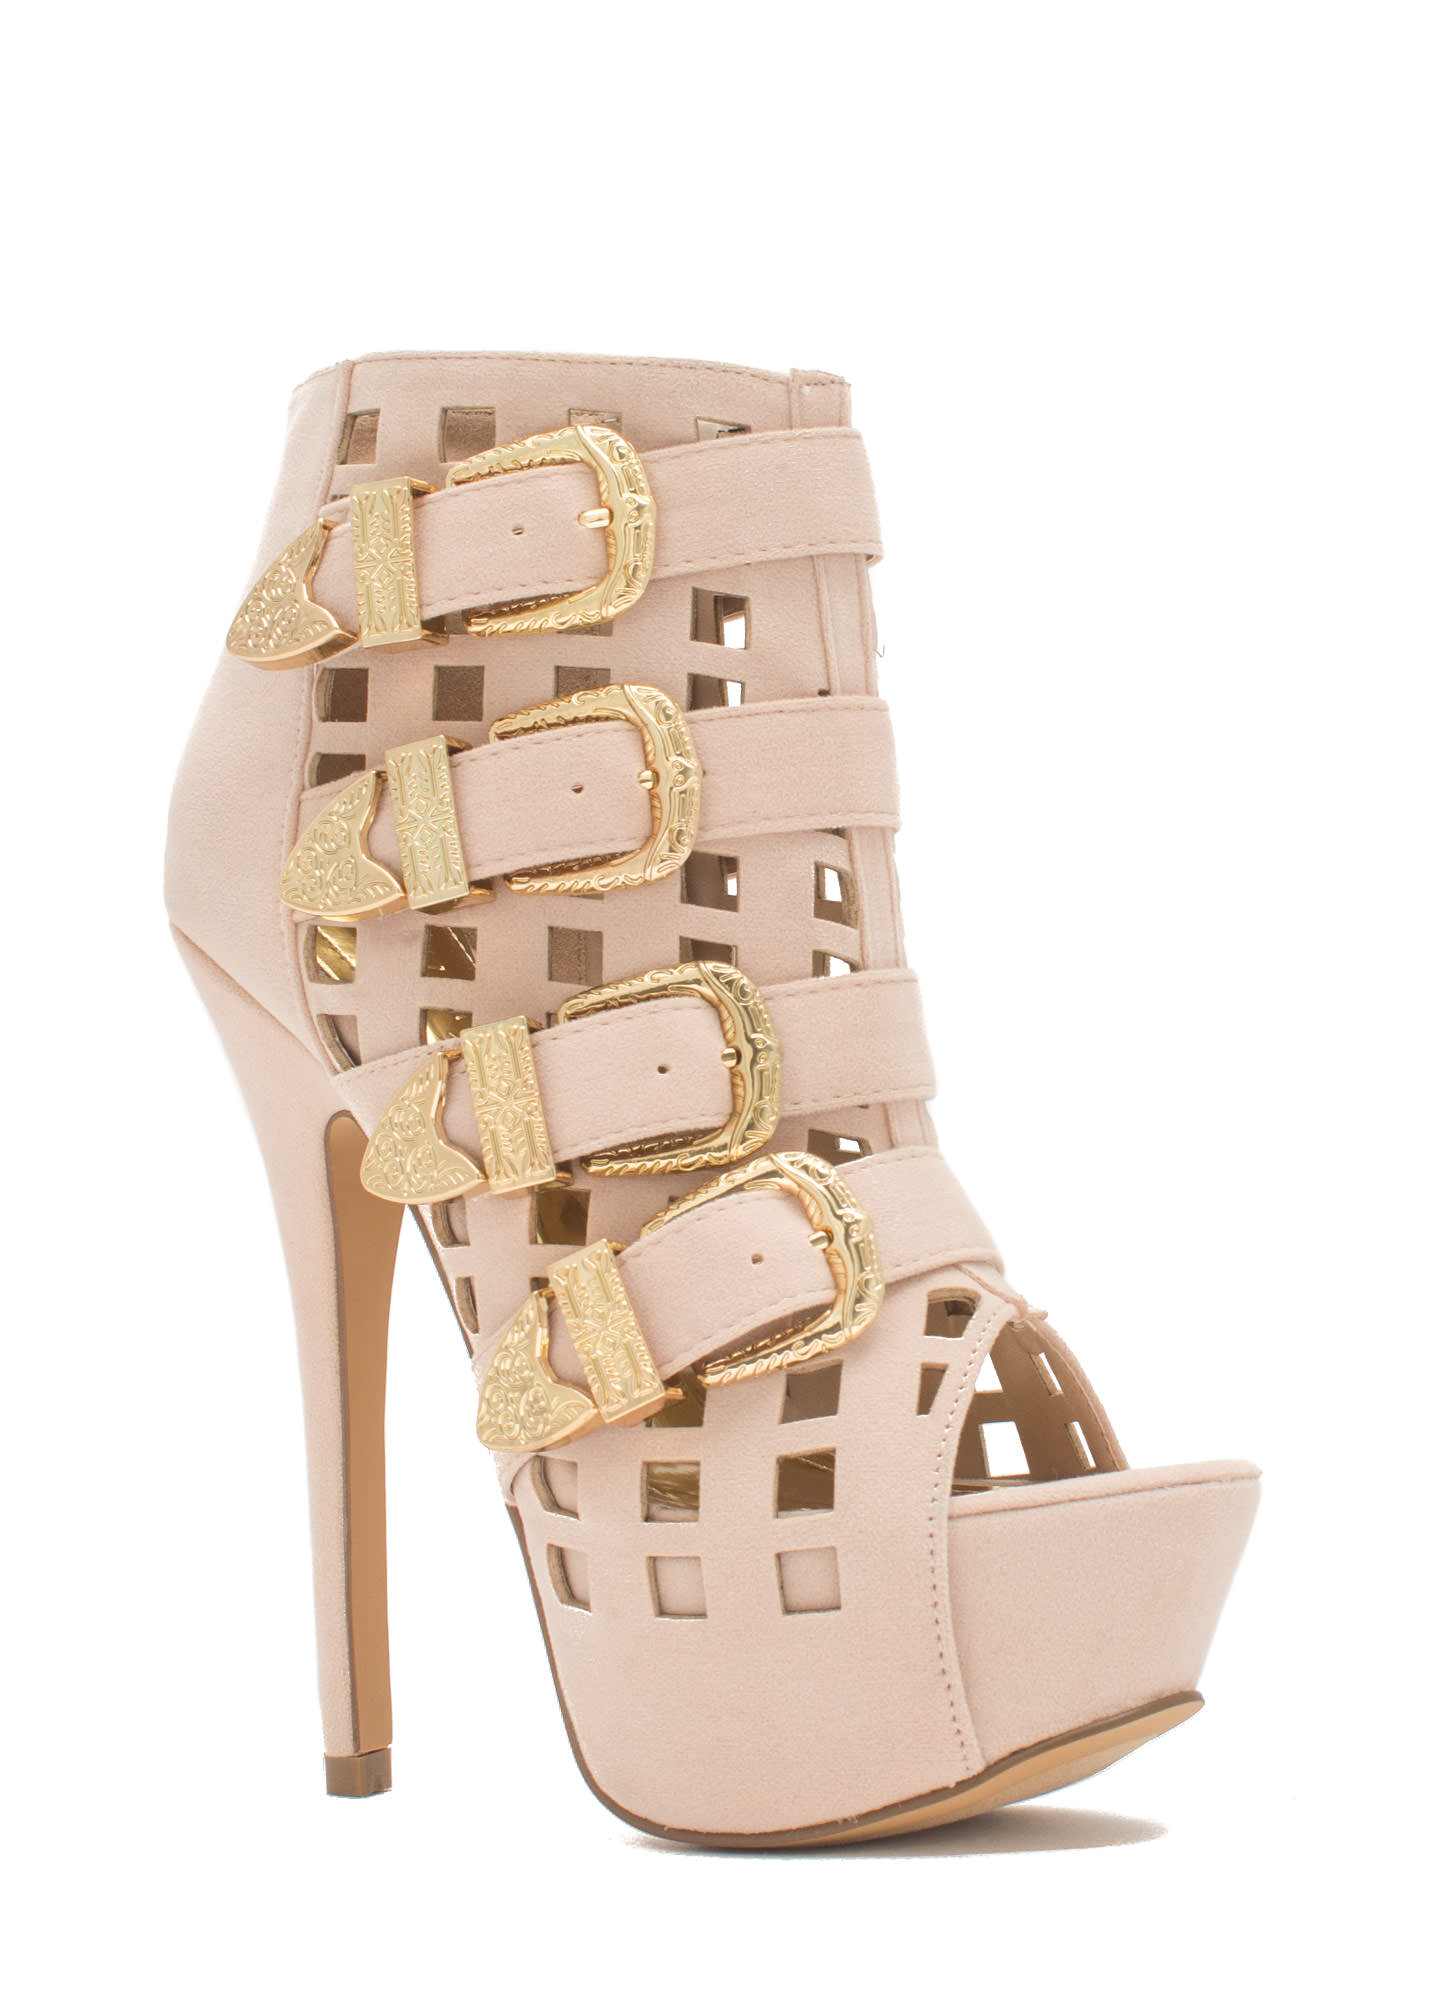 Work The Grid Line Buckled Platform Heels NUDE